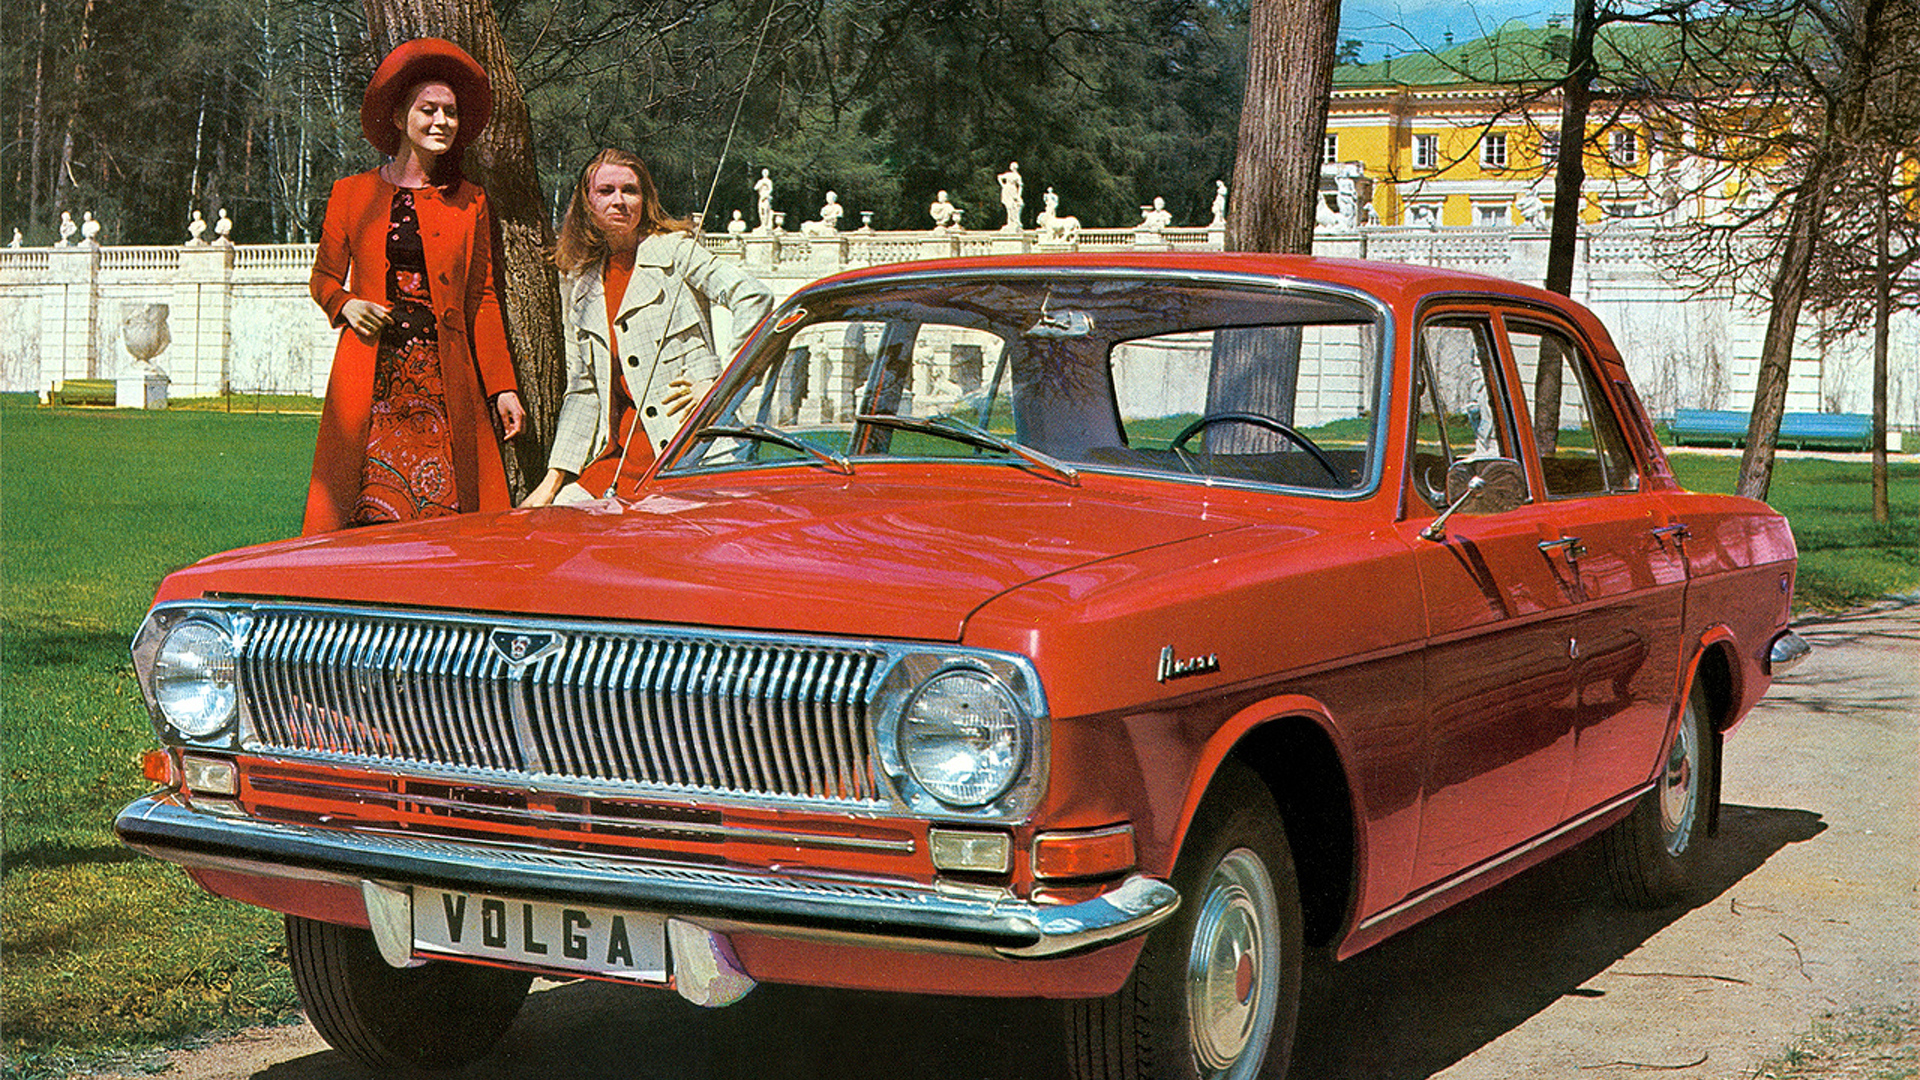 GAZ 2410 - the legend of the Soviet automobile industry